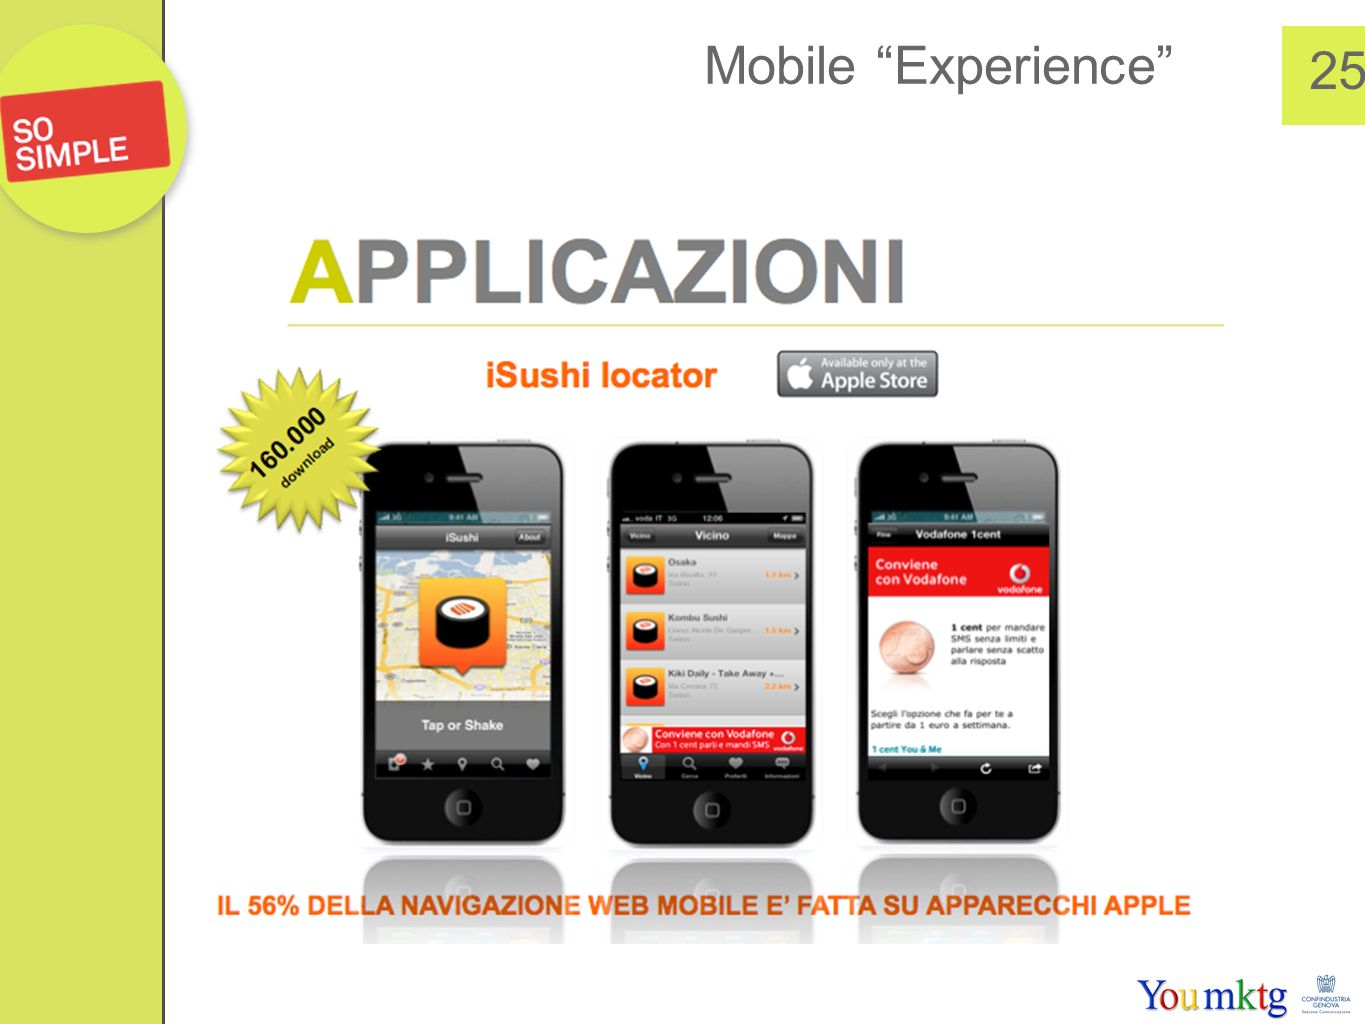 Mobile Experience 25